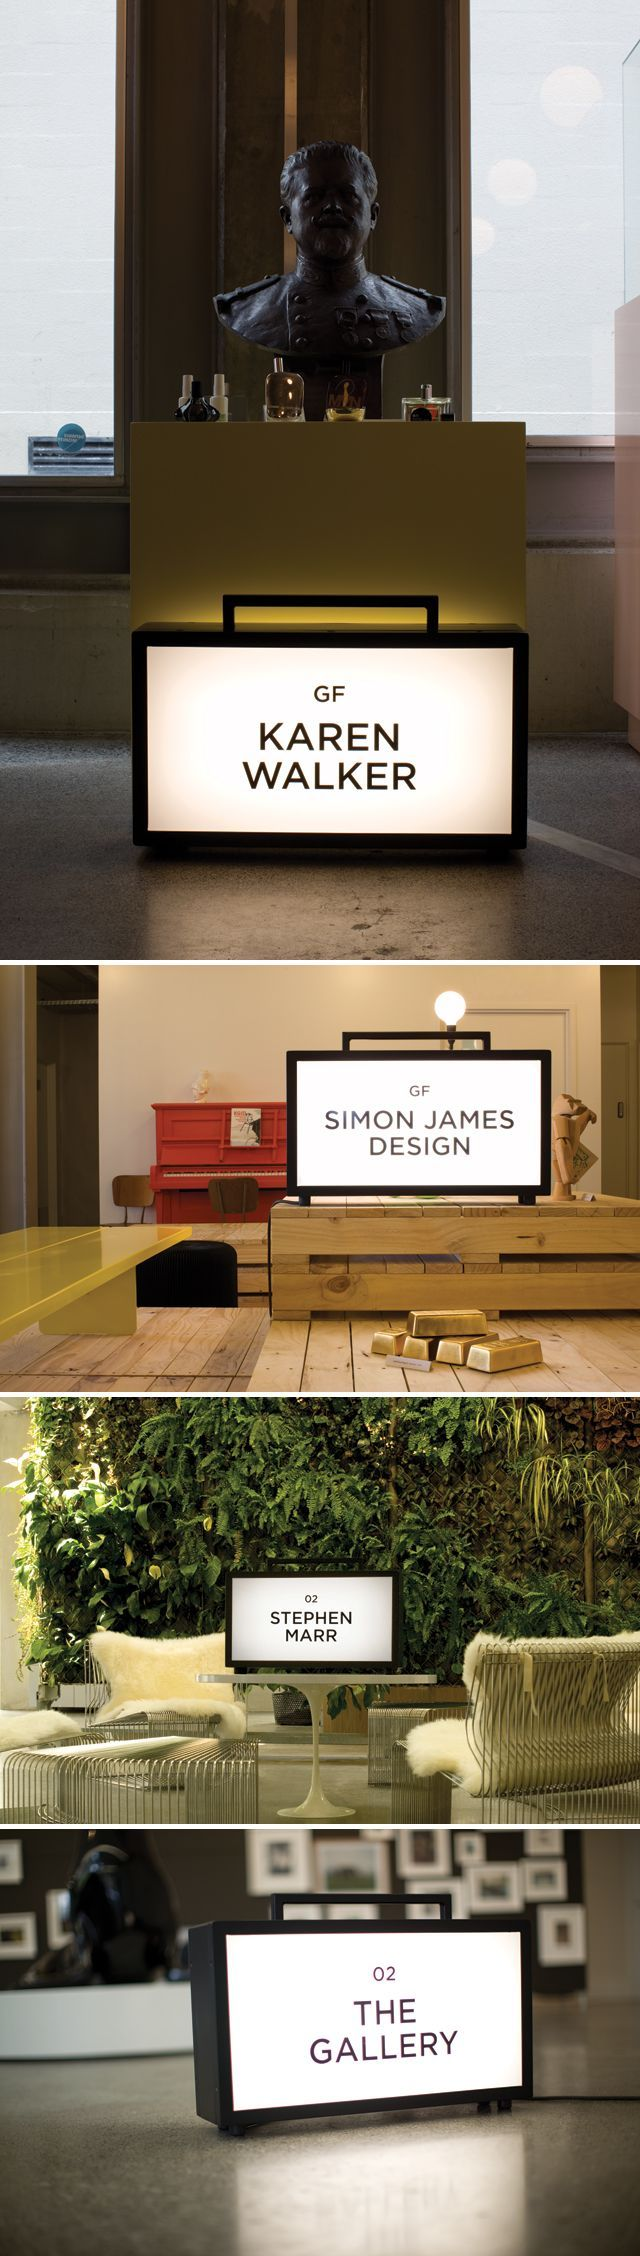 The Department Store / great interior signage at this Auckland based store. | restaurants, retail, & hotels | Pinterest